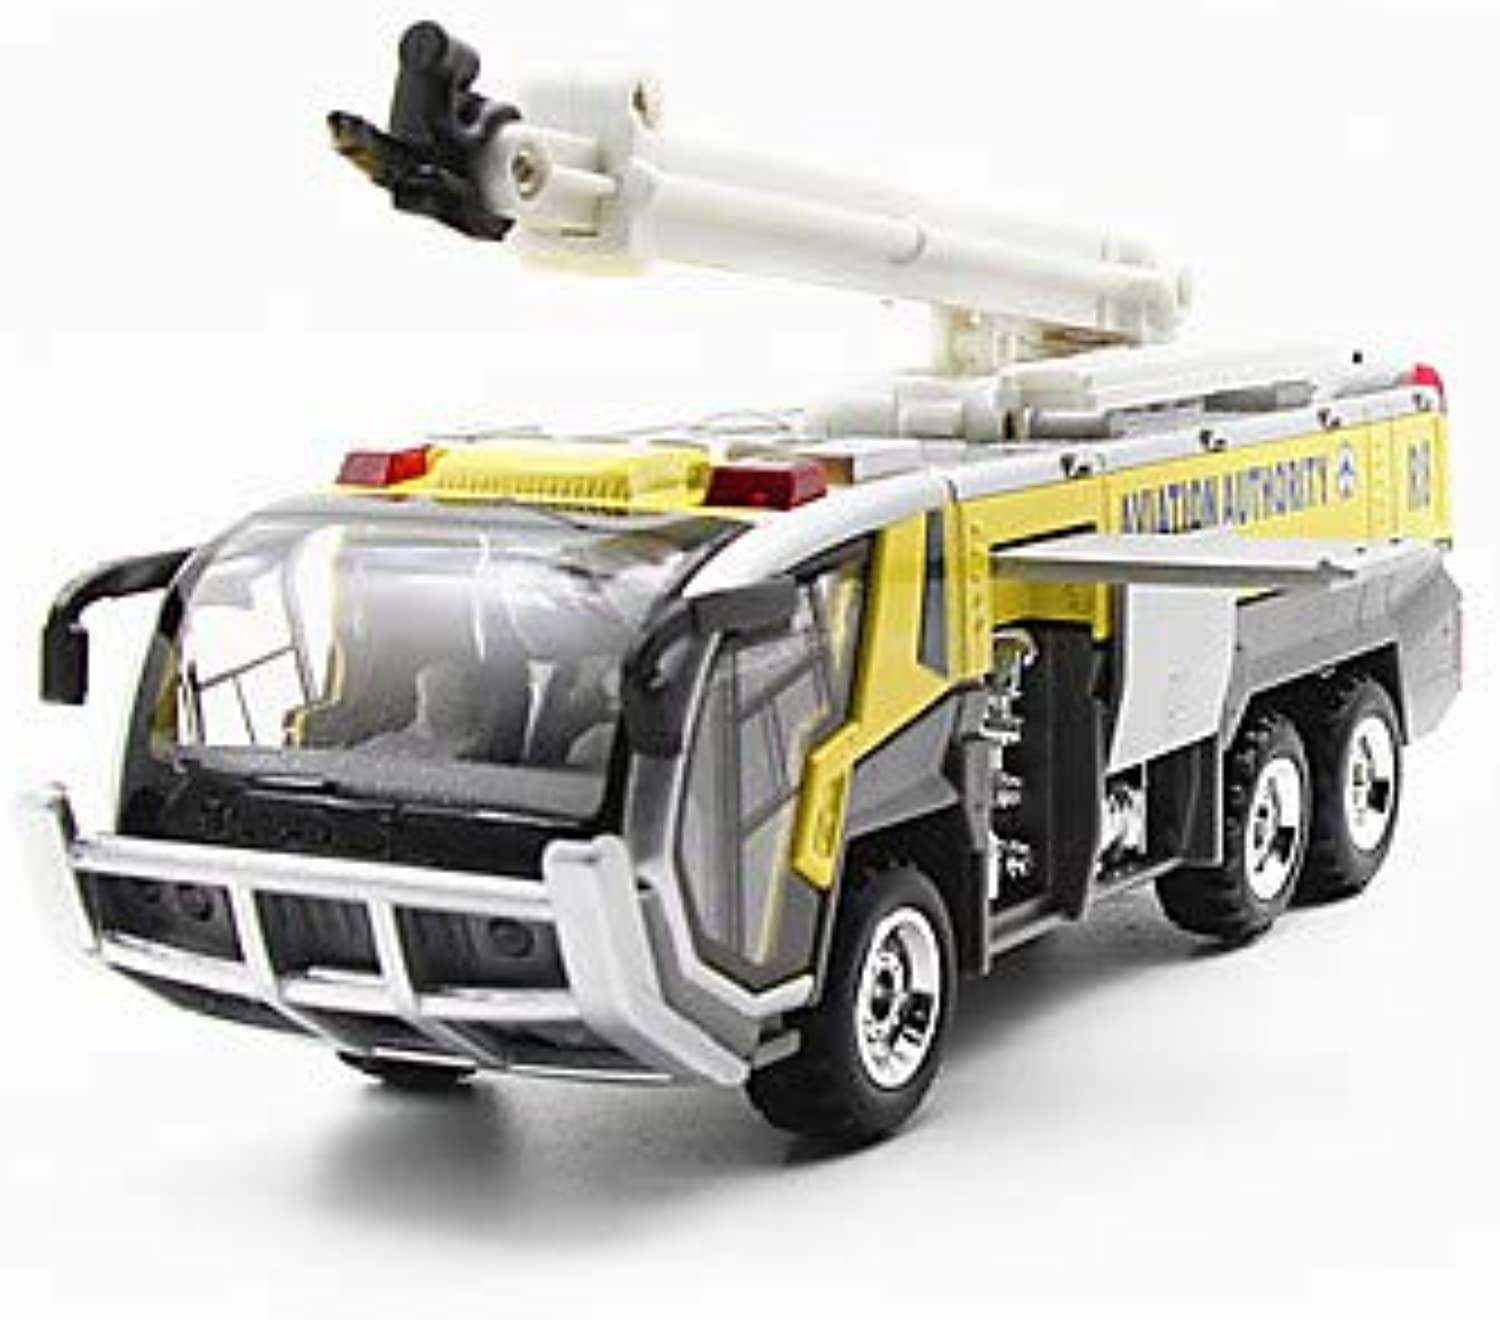 Fire Engine Vehicle Toy Truck Construction Vehicle Toy Car Model Car 1 32 Simulation Kid's Unisex Boys' Girls' Toy Gift